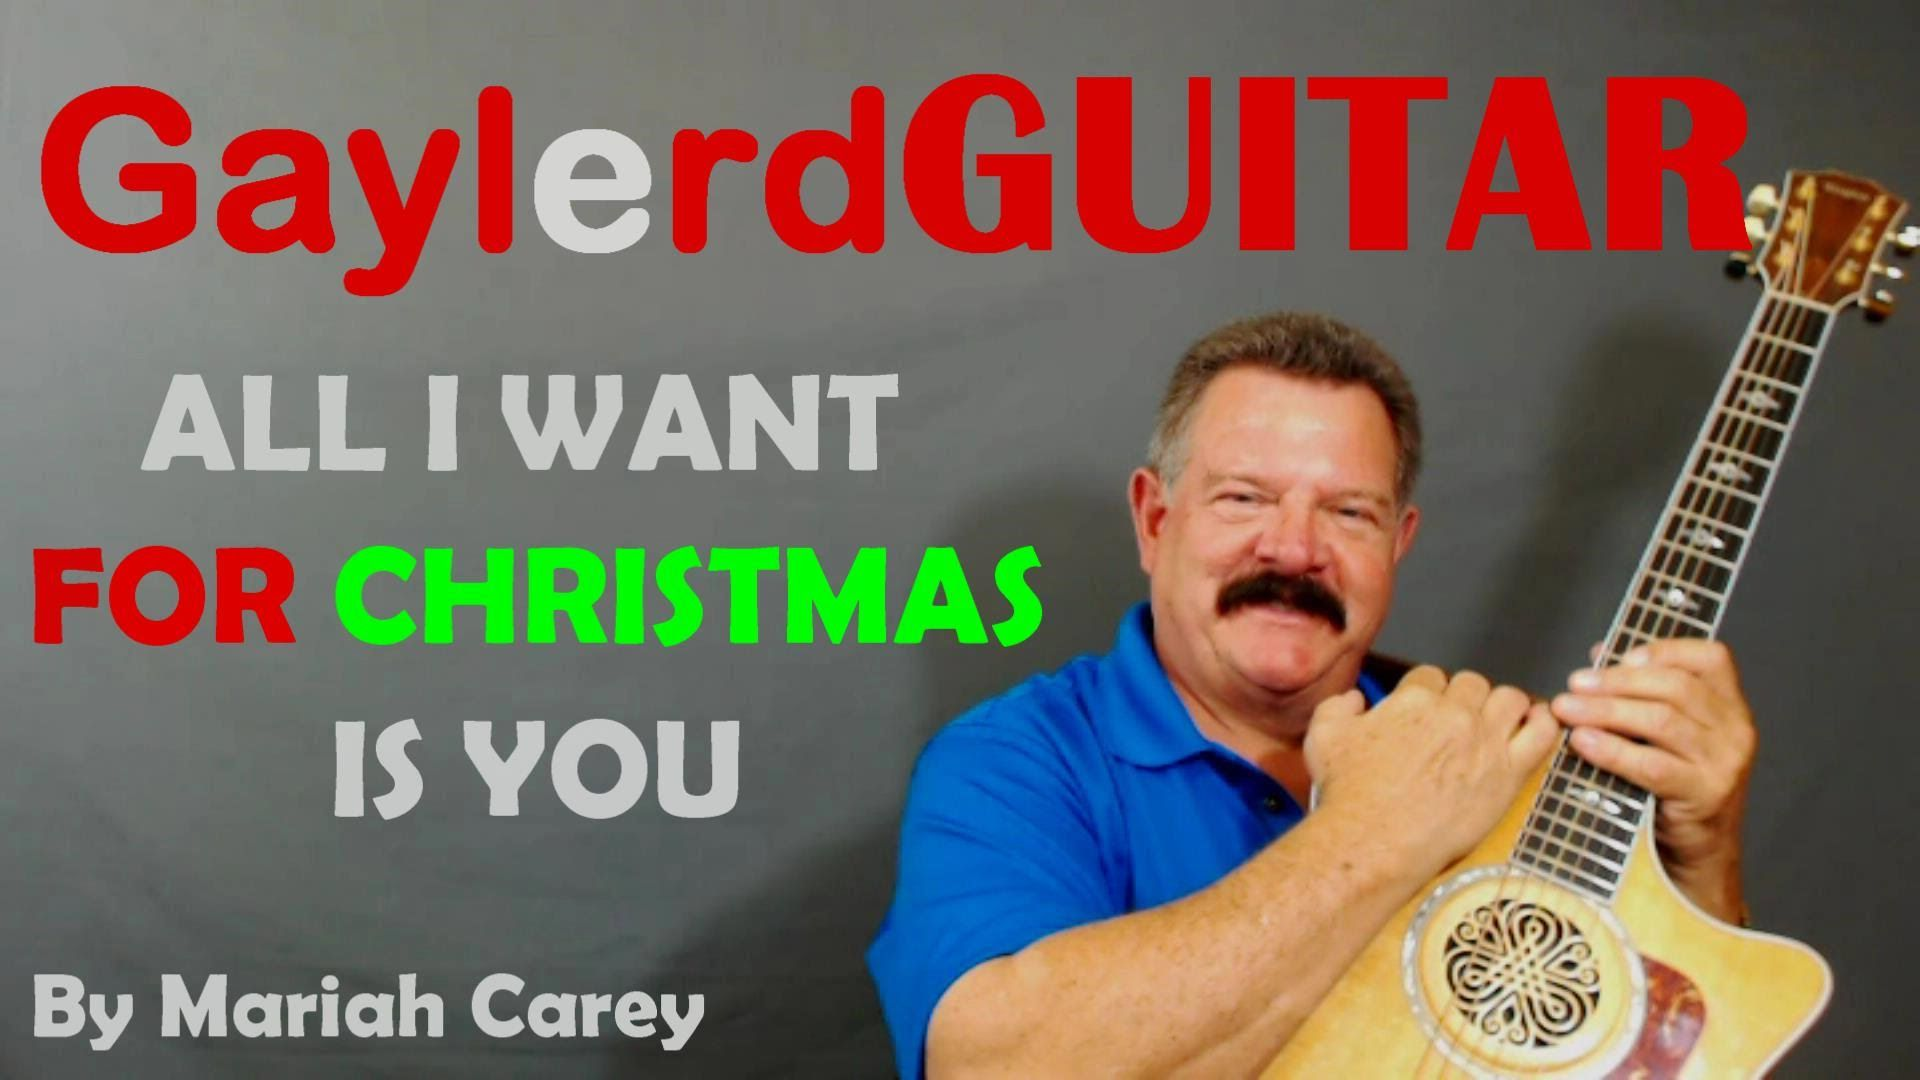 All I Want For Christmas Is You Mariah Carey Guitar Lesson Guitar Lessons For Beginners Guitar Lessons Playing Guitar